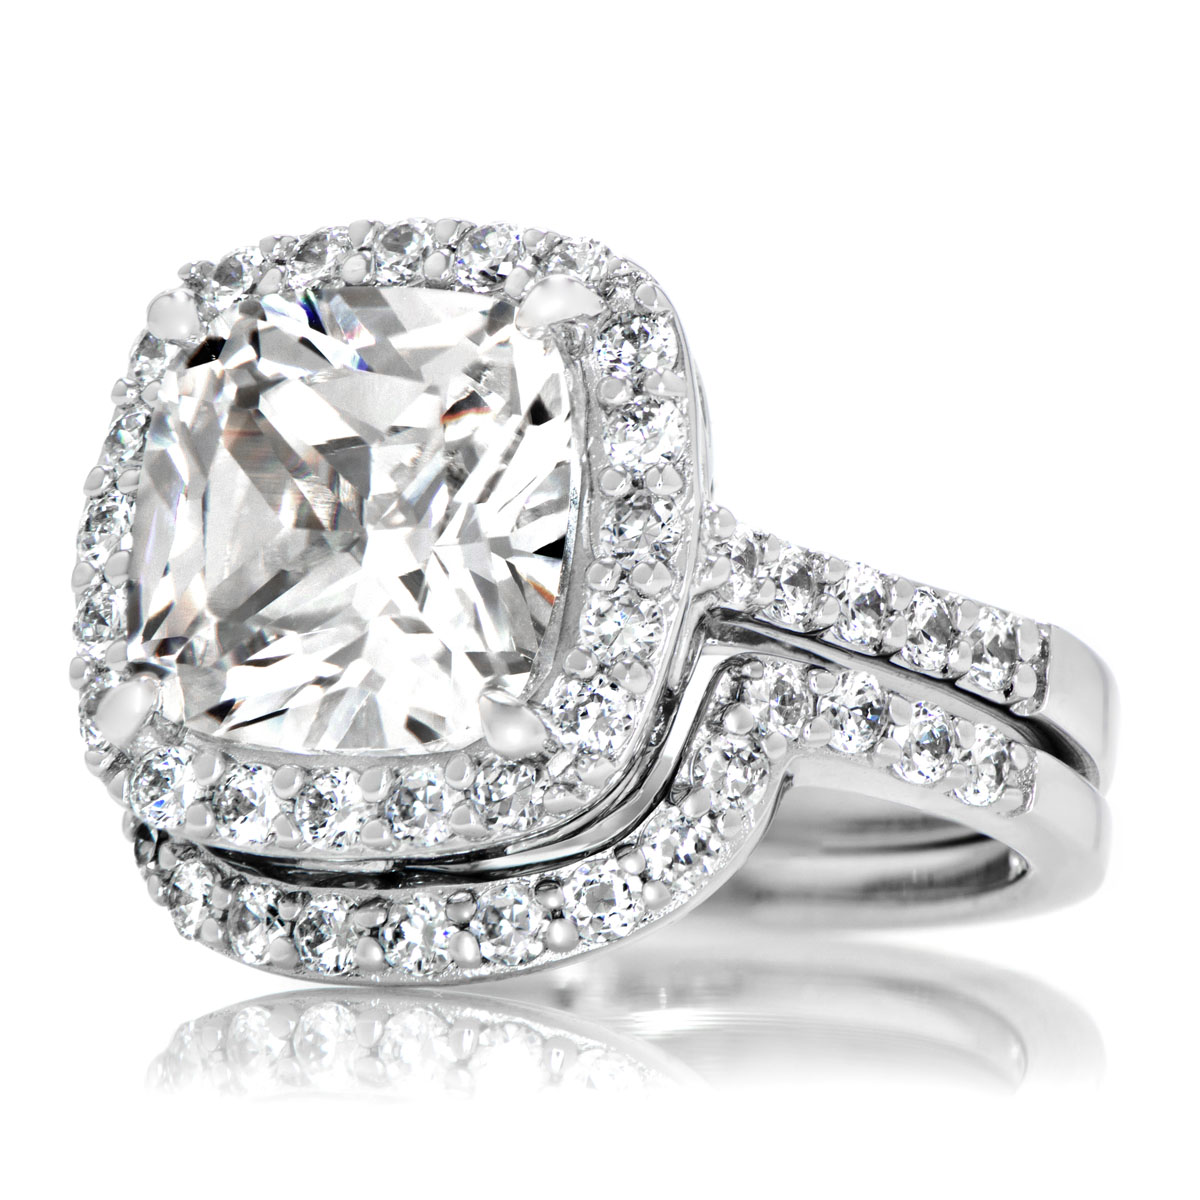 Cushion Cut Cz Halo Wedding Ring Set 10mm